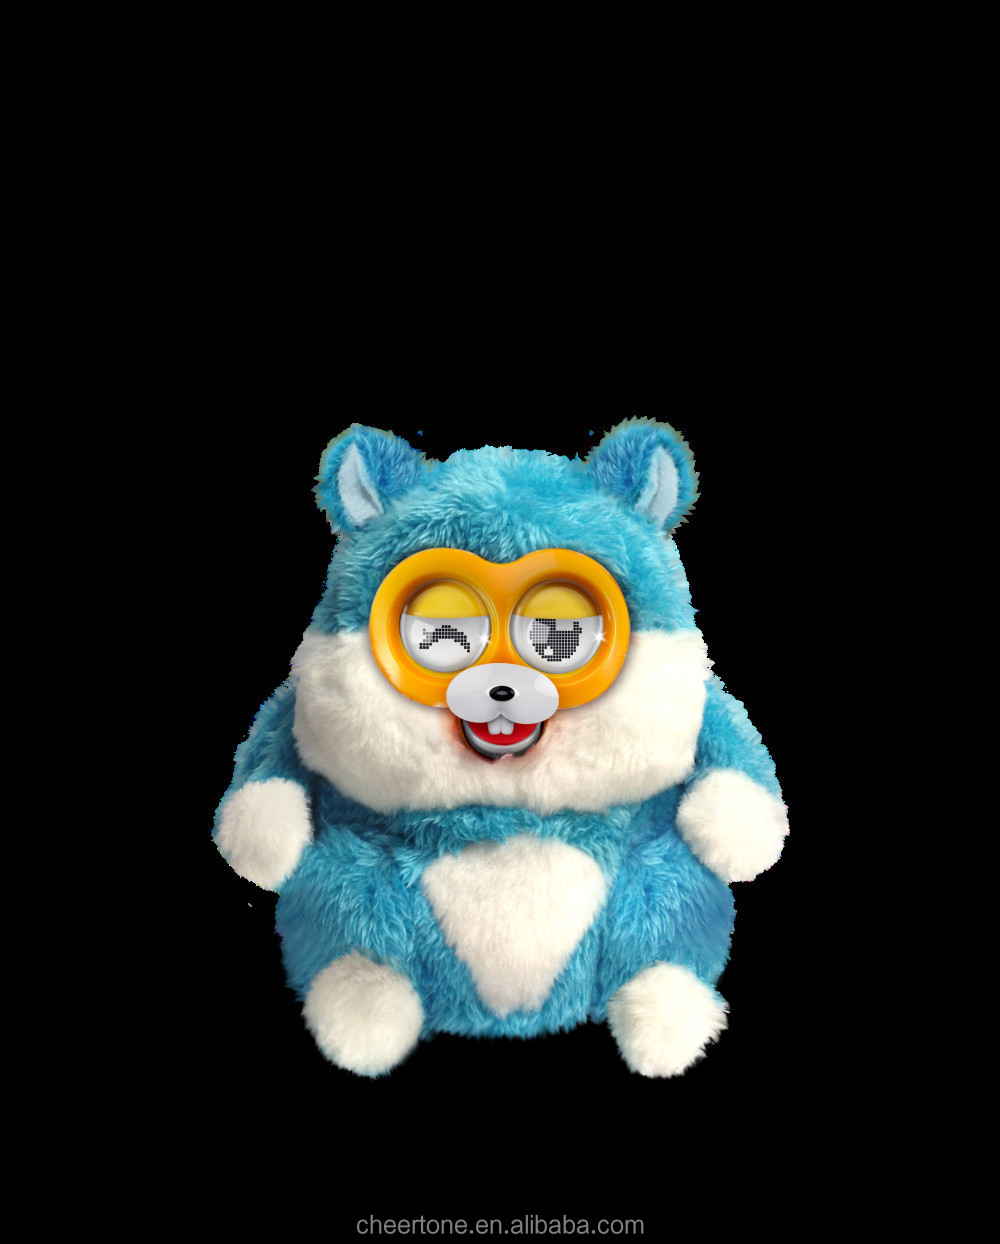 Walking Talking Singing Plush Toy electronic toy interactive with phone